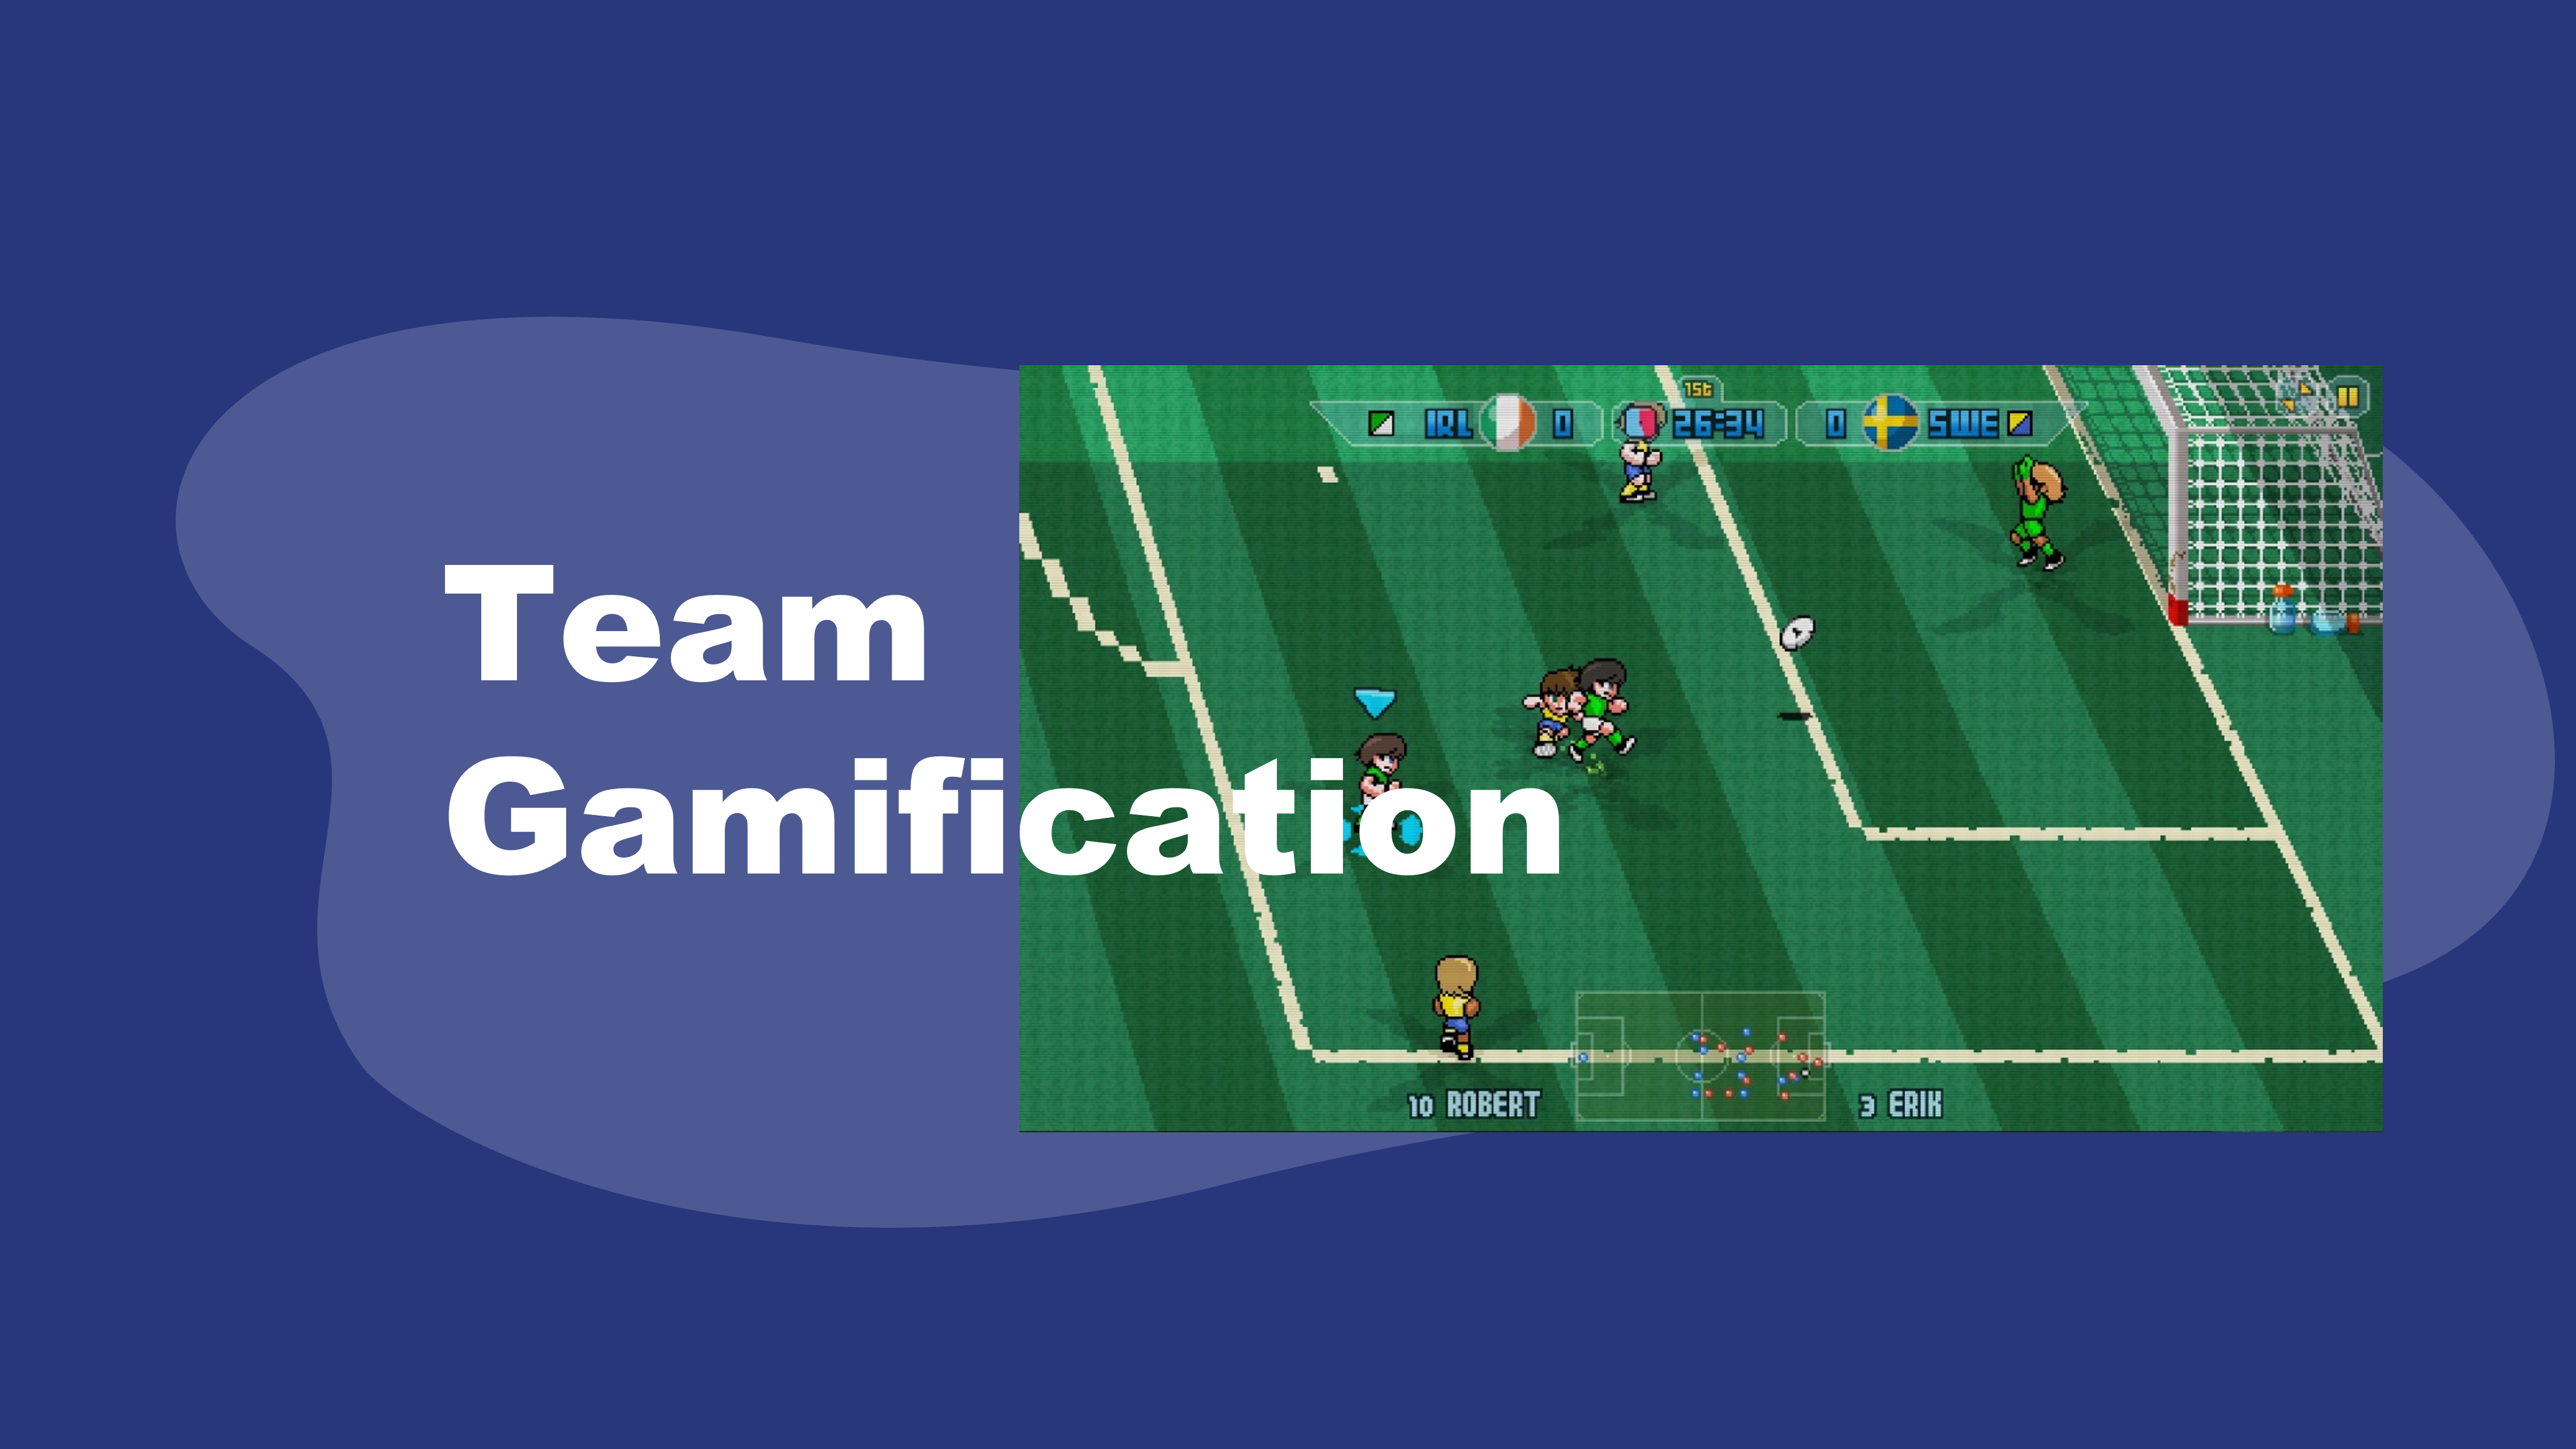 Team Gamification